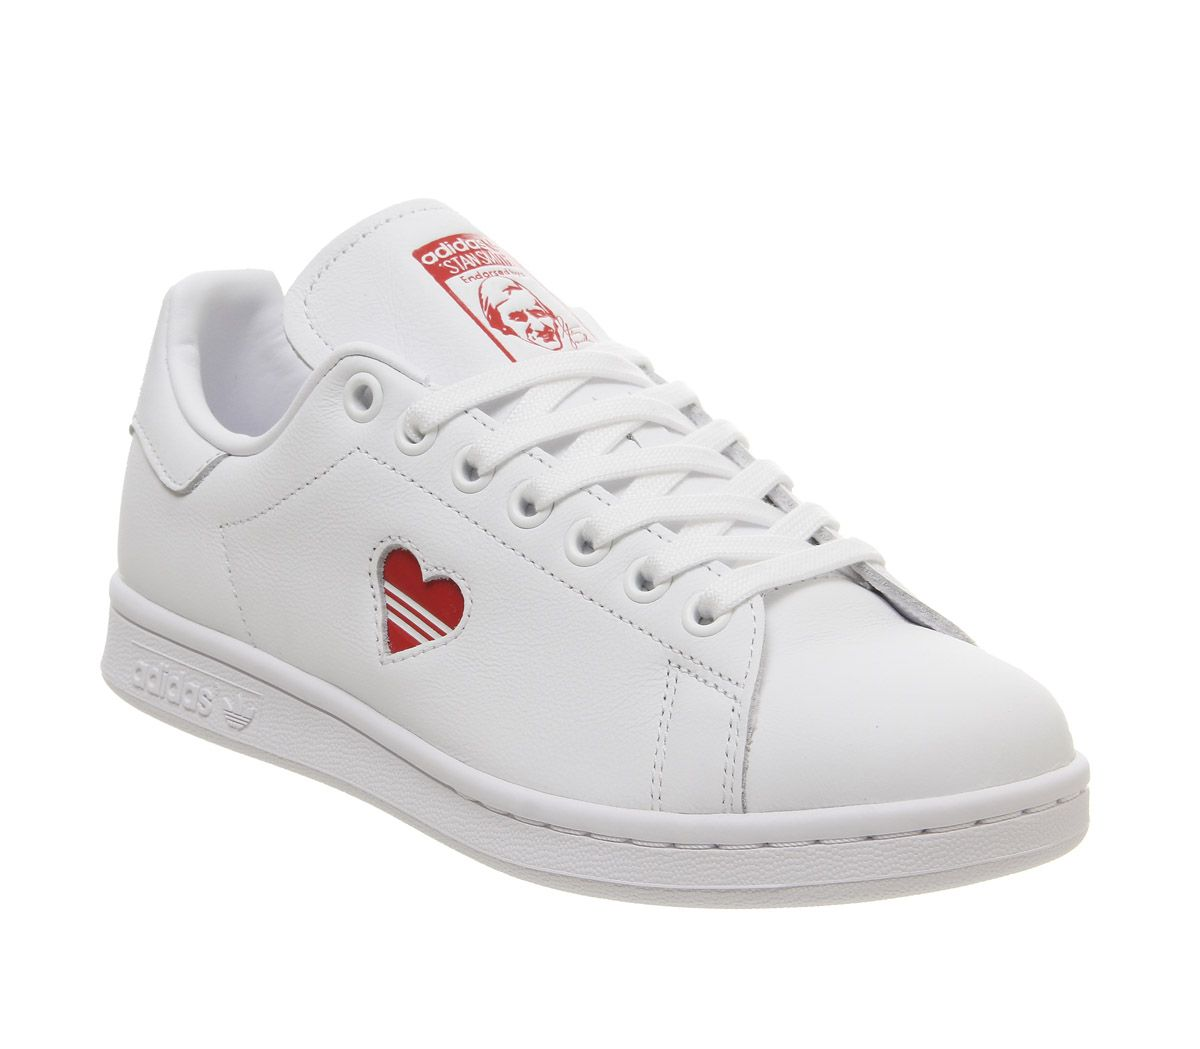 official photos f0f6e 4f422 Sentinel Womens Adidas Stan Smith Trainers White Red Heart Trainers Shoes